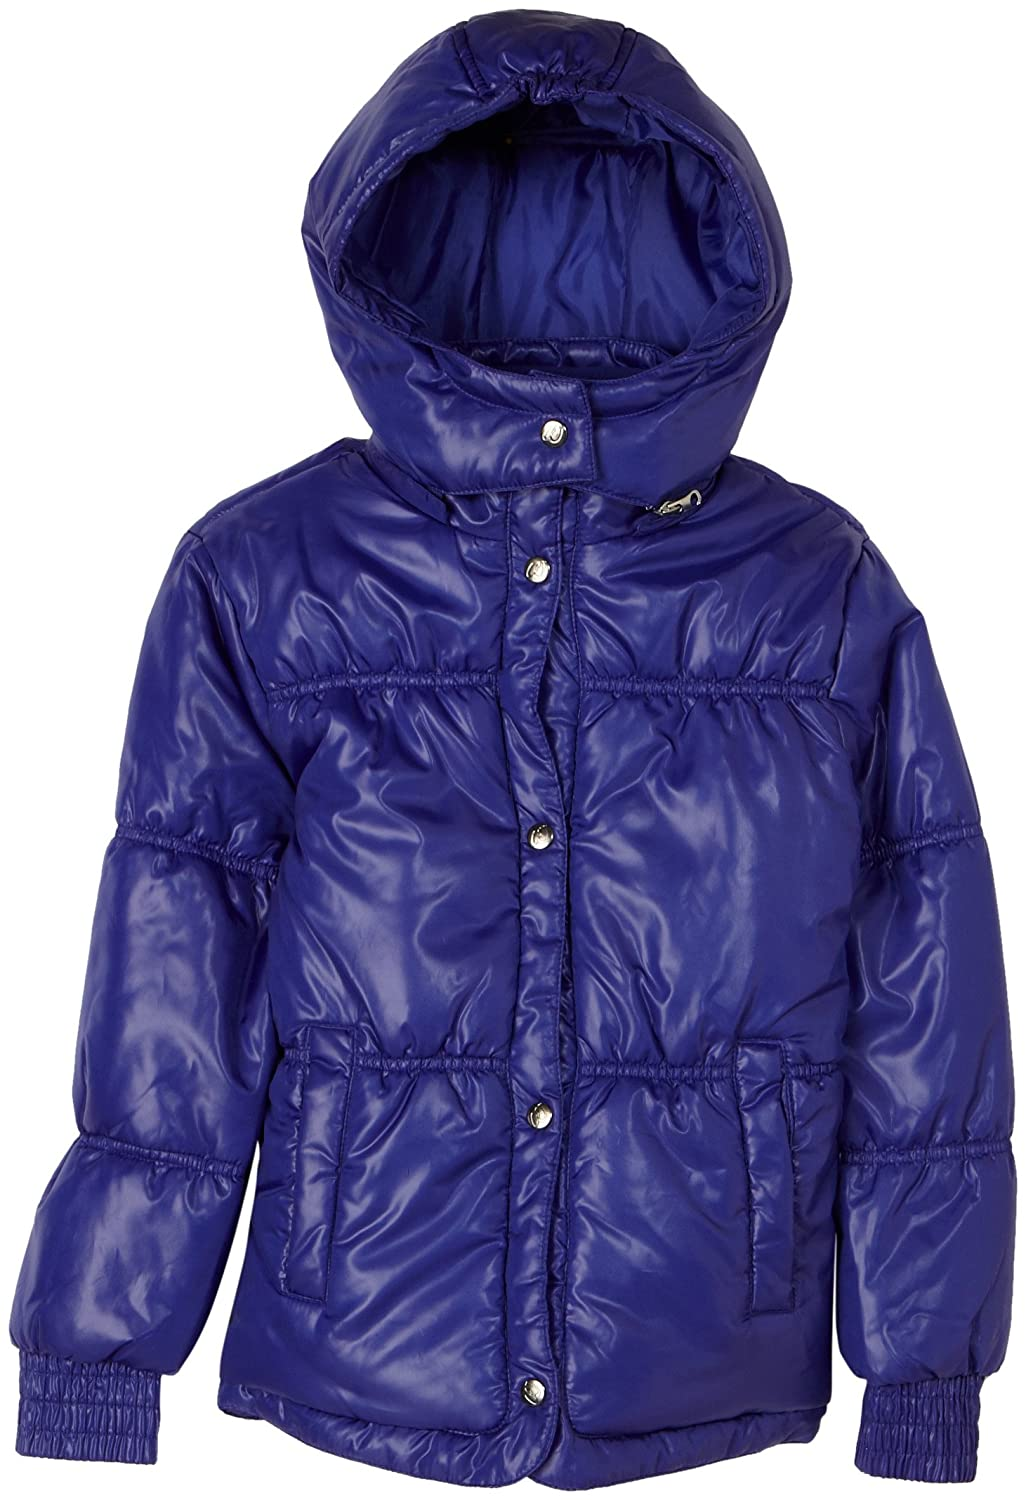 58bd35386 75% off Outerwear at Amazon - The Shopper s Apprentice